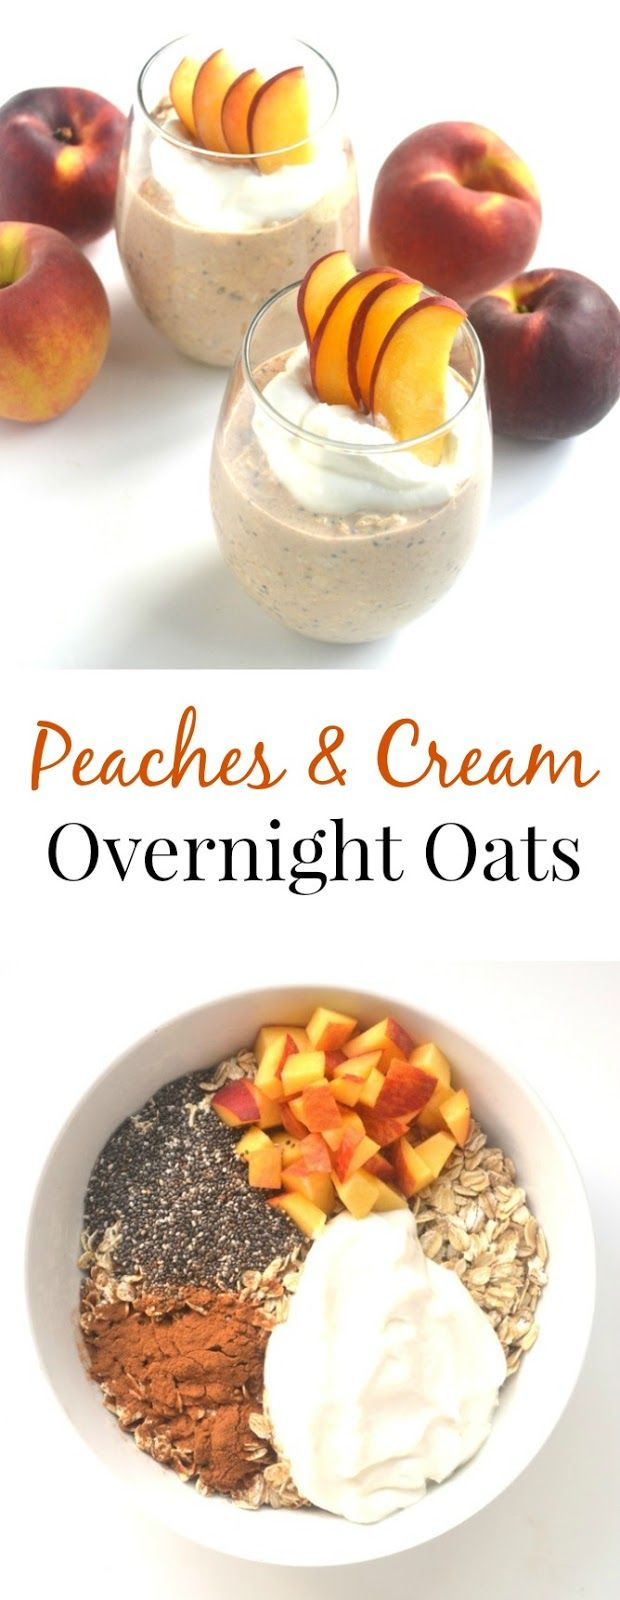 Peaches And Cream Overnight Oats In 2020 Overnight Oats